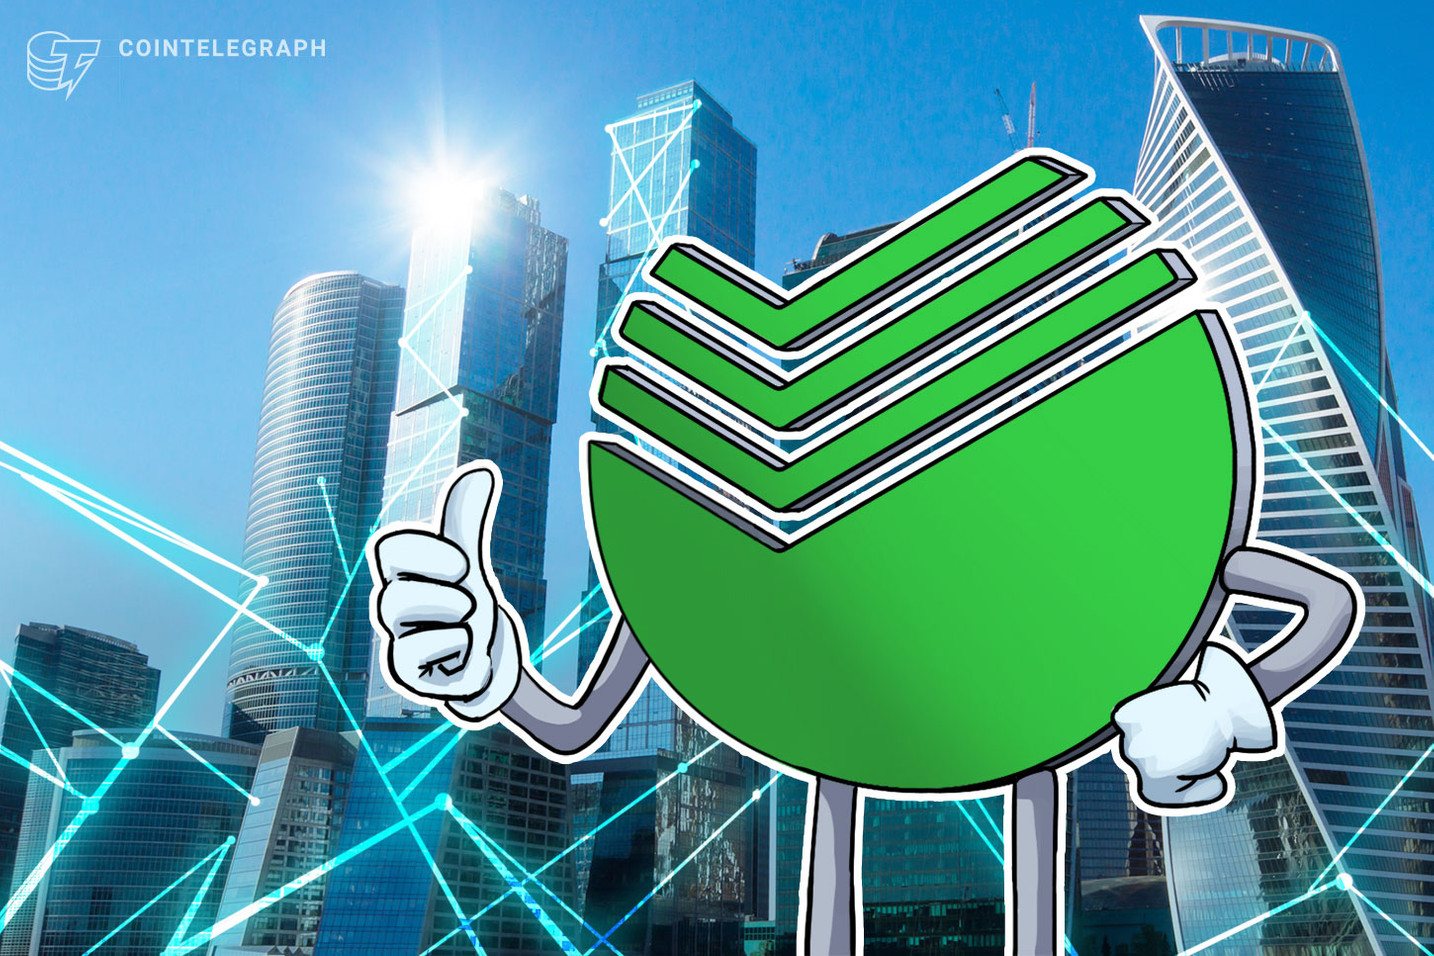 Russia: Sberbank and Interros Group Conclude Blockchain-Based Foreign Exchange Repo Deal